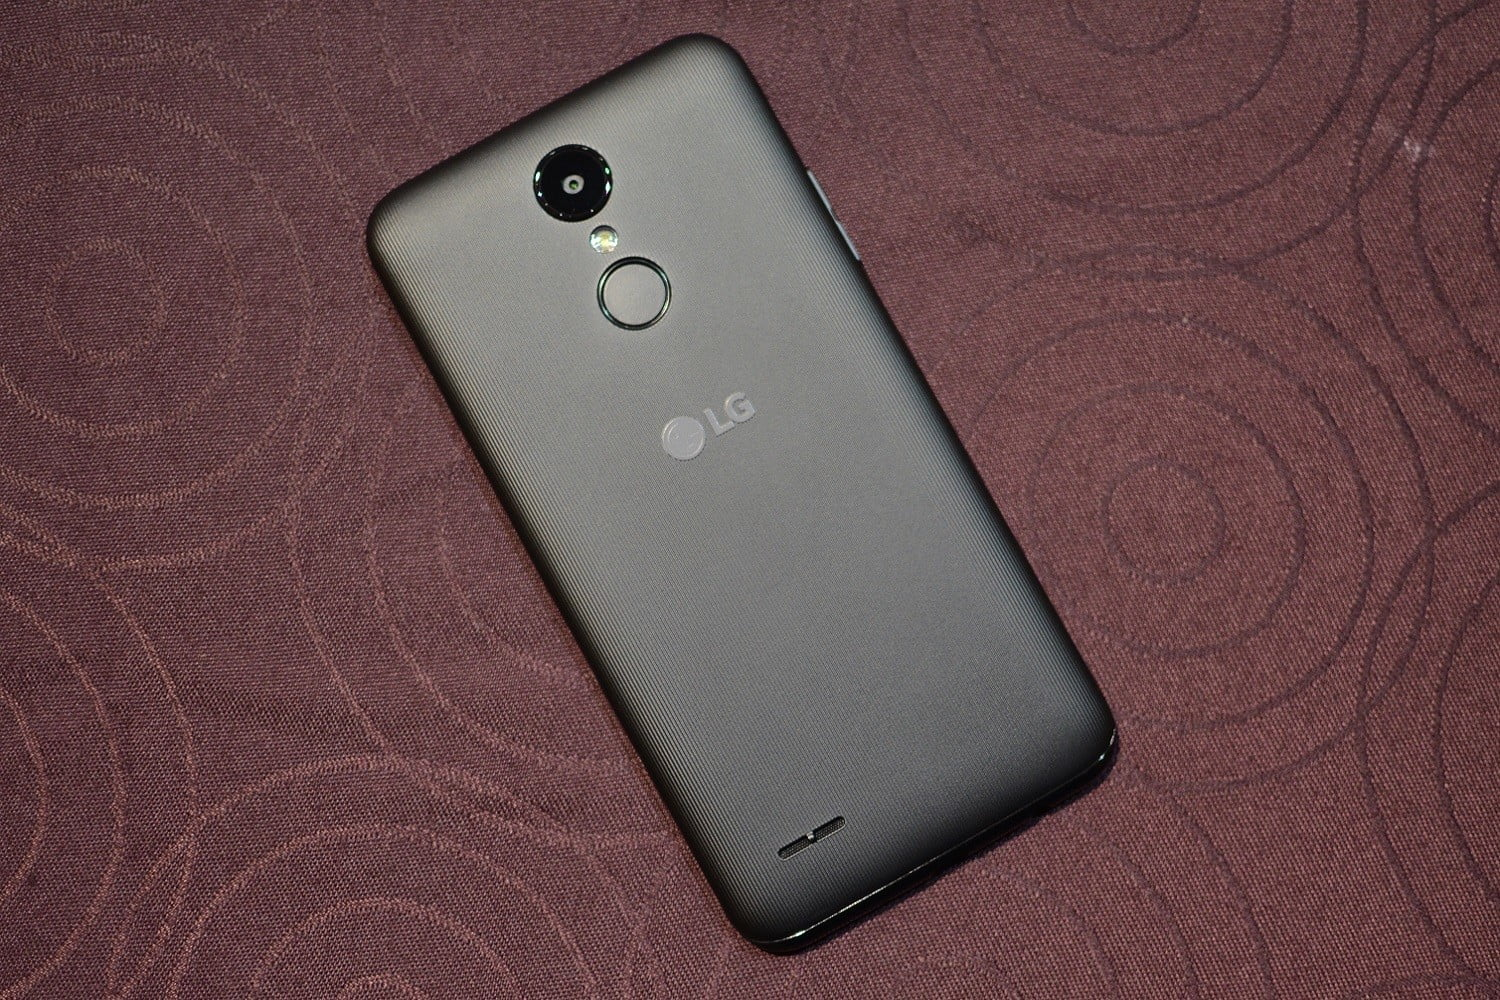 LG Launches a Range of New Smartphones, Including K10, Stylus 3